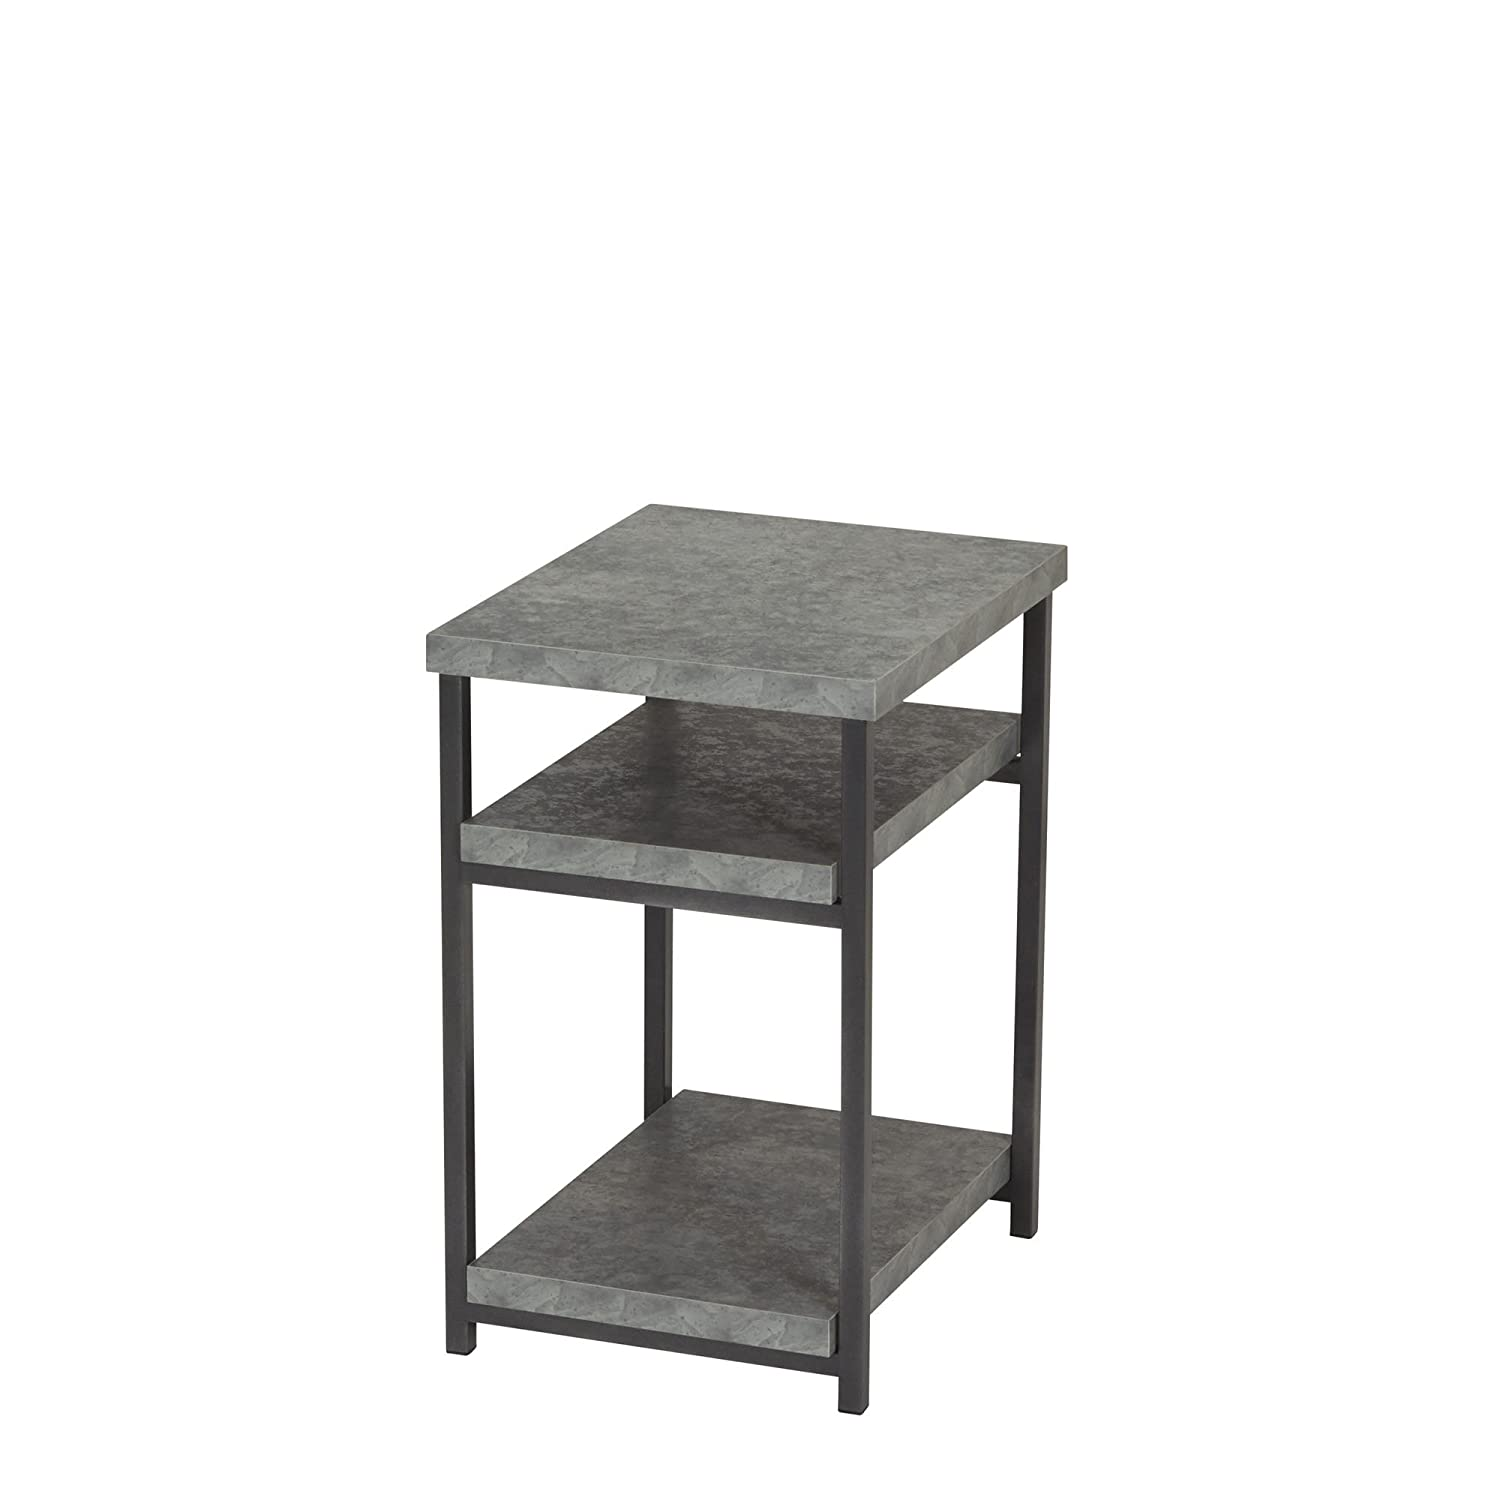 Household Essentials 8097-1 Side Table | End Table with Shelf for Storage | Faux Slate Concrete